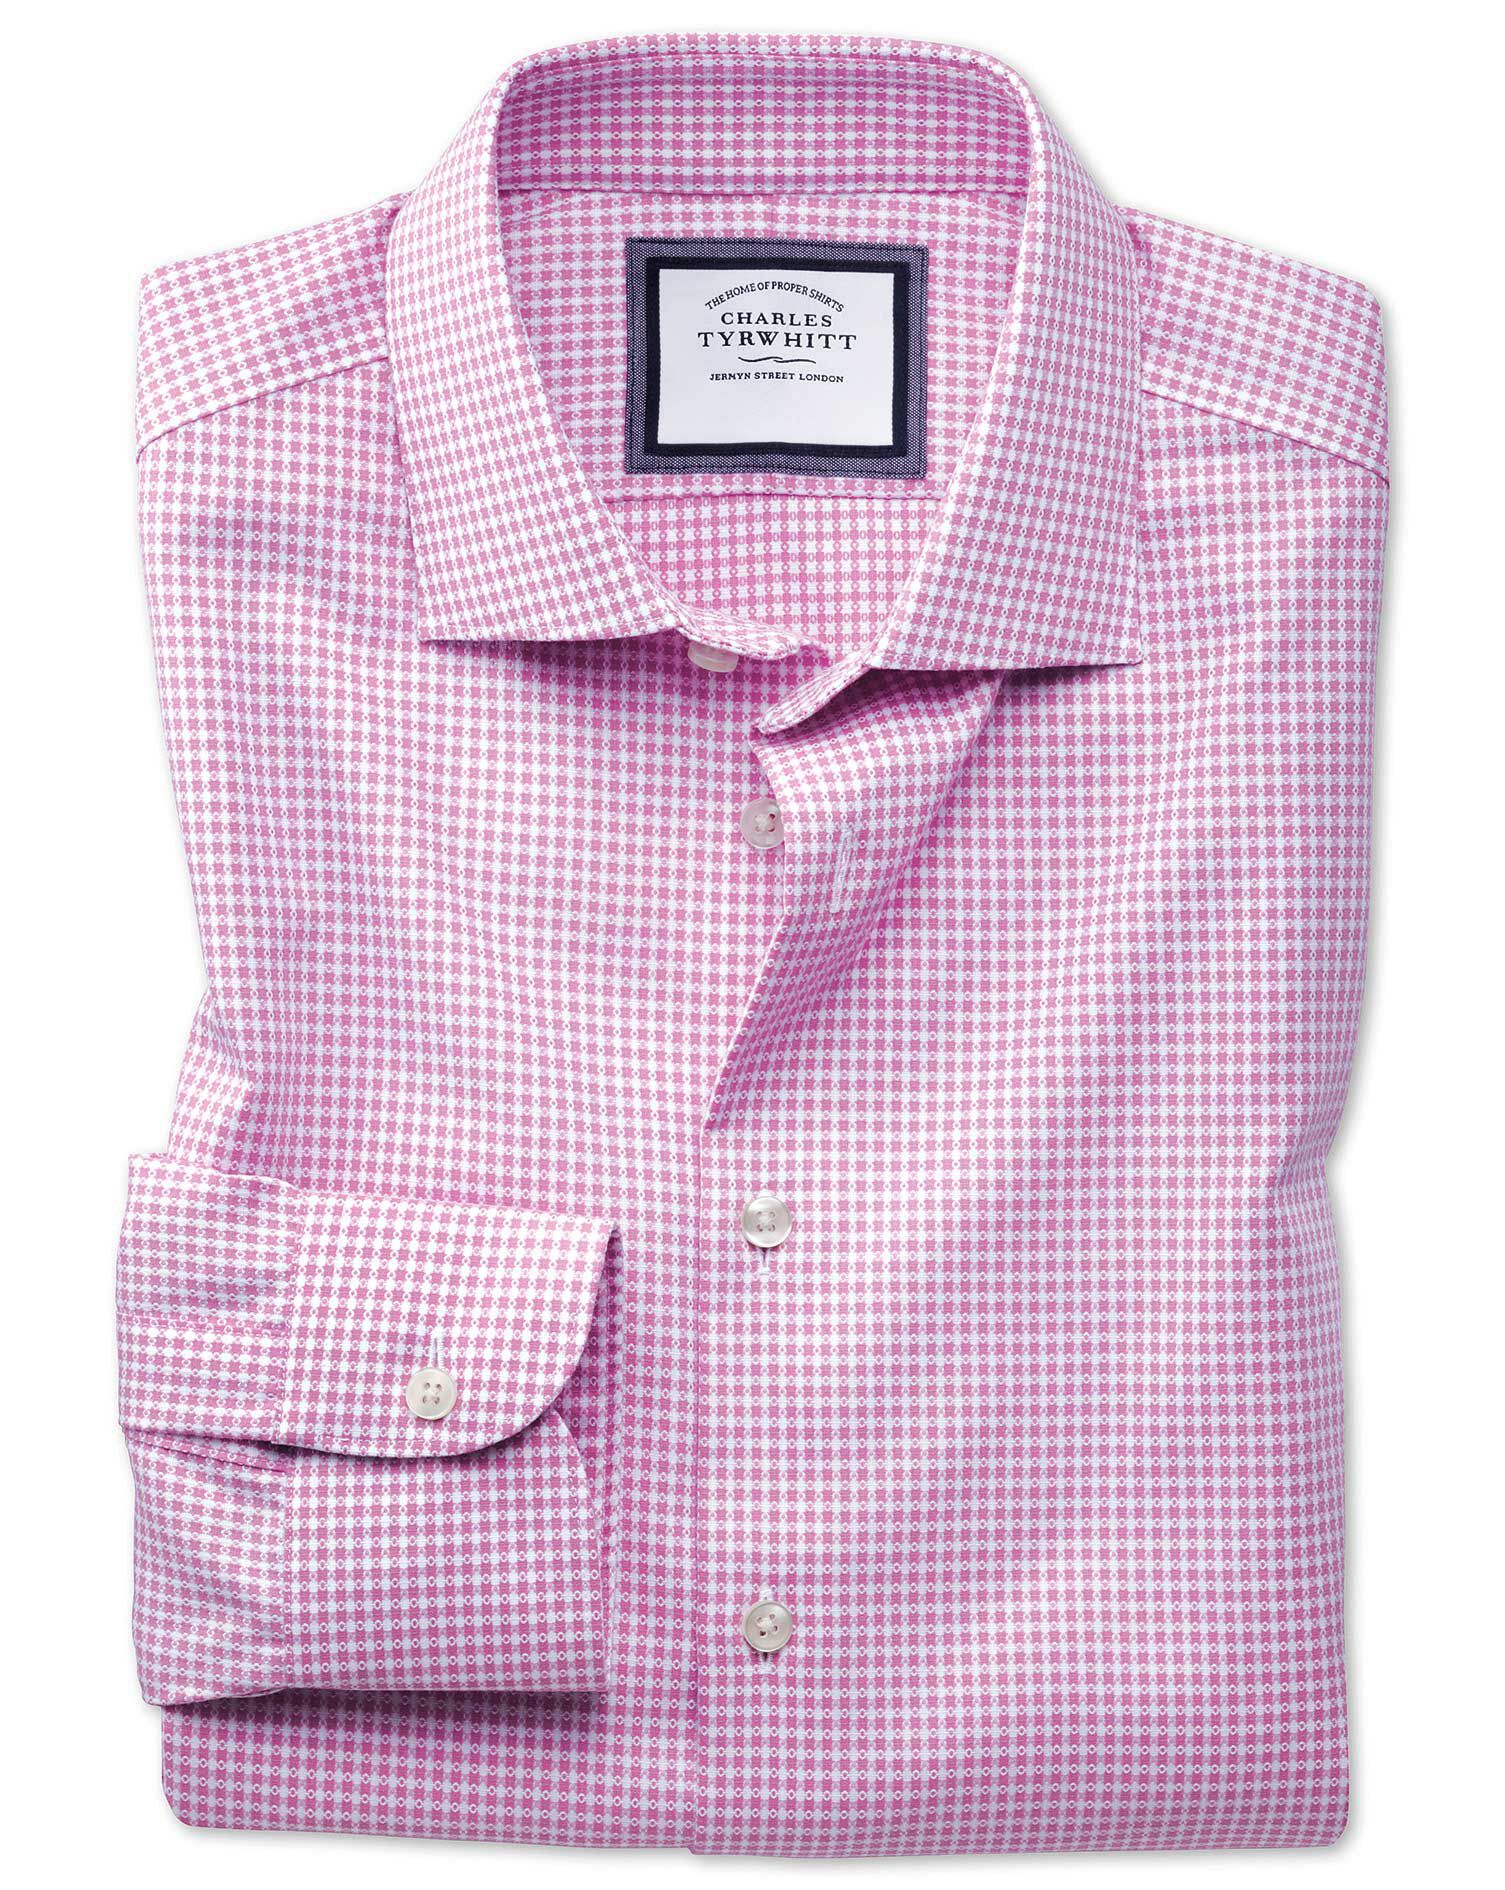 Extra Slim Fit Business Casual Non-Iron Modern Textures Pink and White Cotton Formal Shirt Single Cu